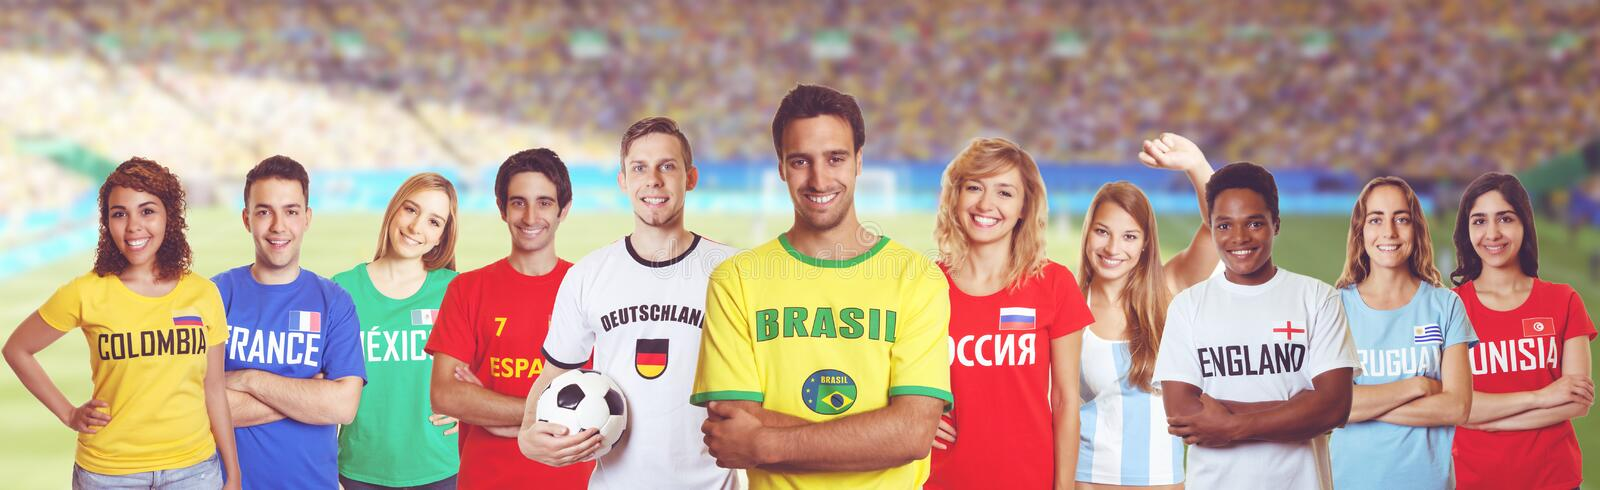 Soccer fan from Brazil with supporters from other countries. Soccer fan from Brazil with supporters from France, Germany, Russia and other countries stock images